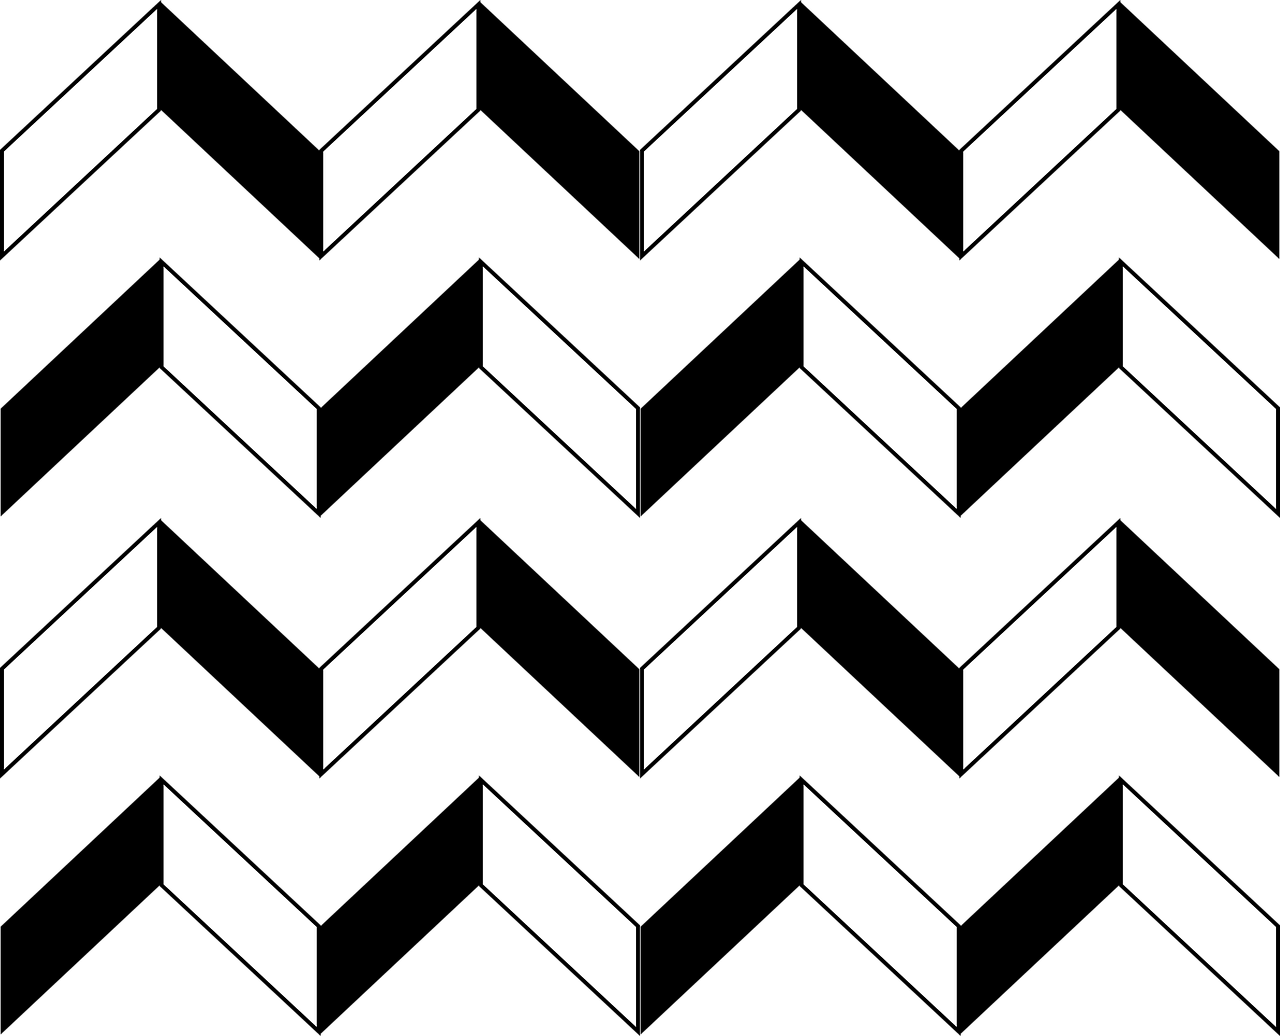 Zigzag,pattern,background,black and white,free vector